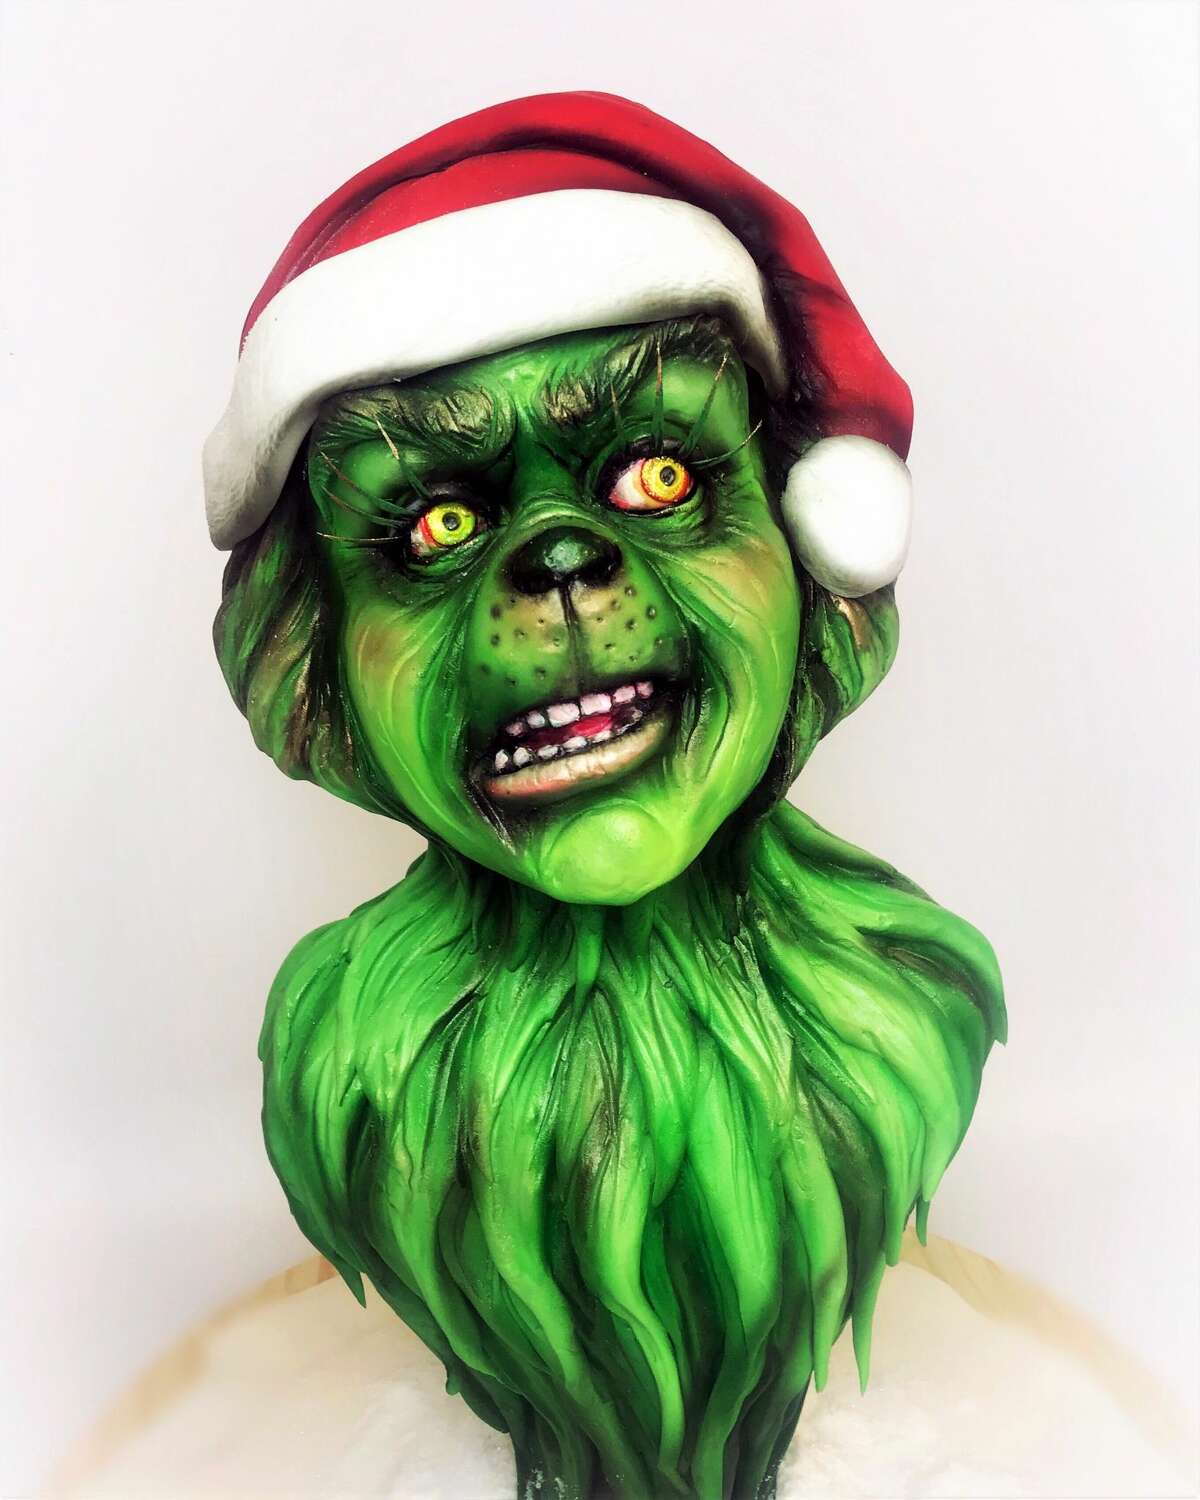 Cake artist Sarah Ono Jones of Houston's Common Bond shares her creations. Pictured: The Grinch.